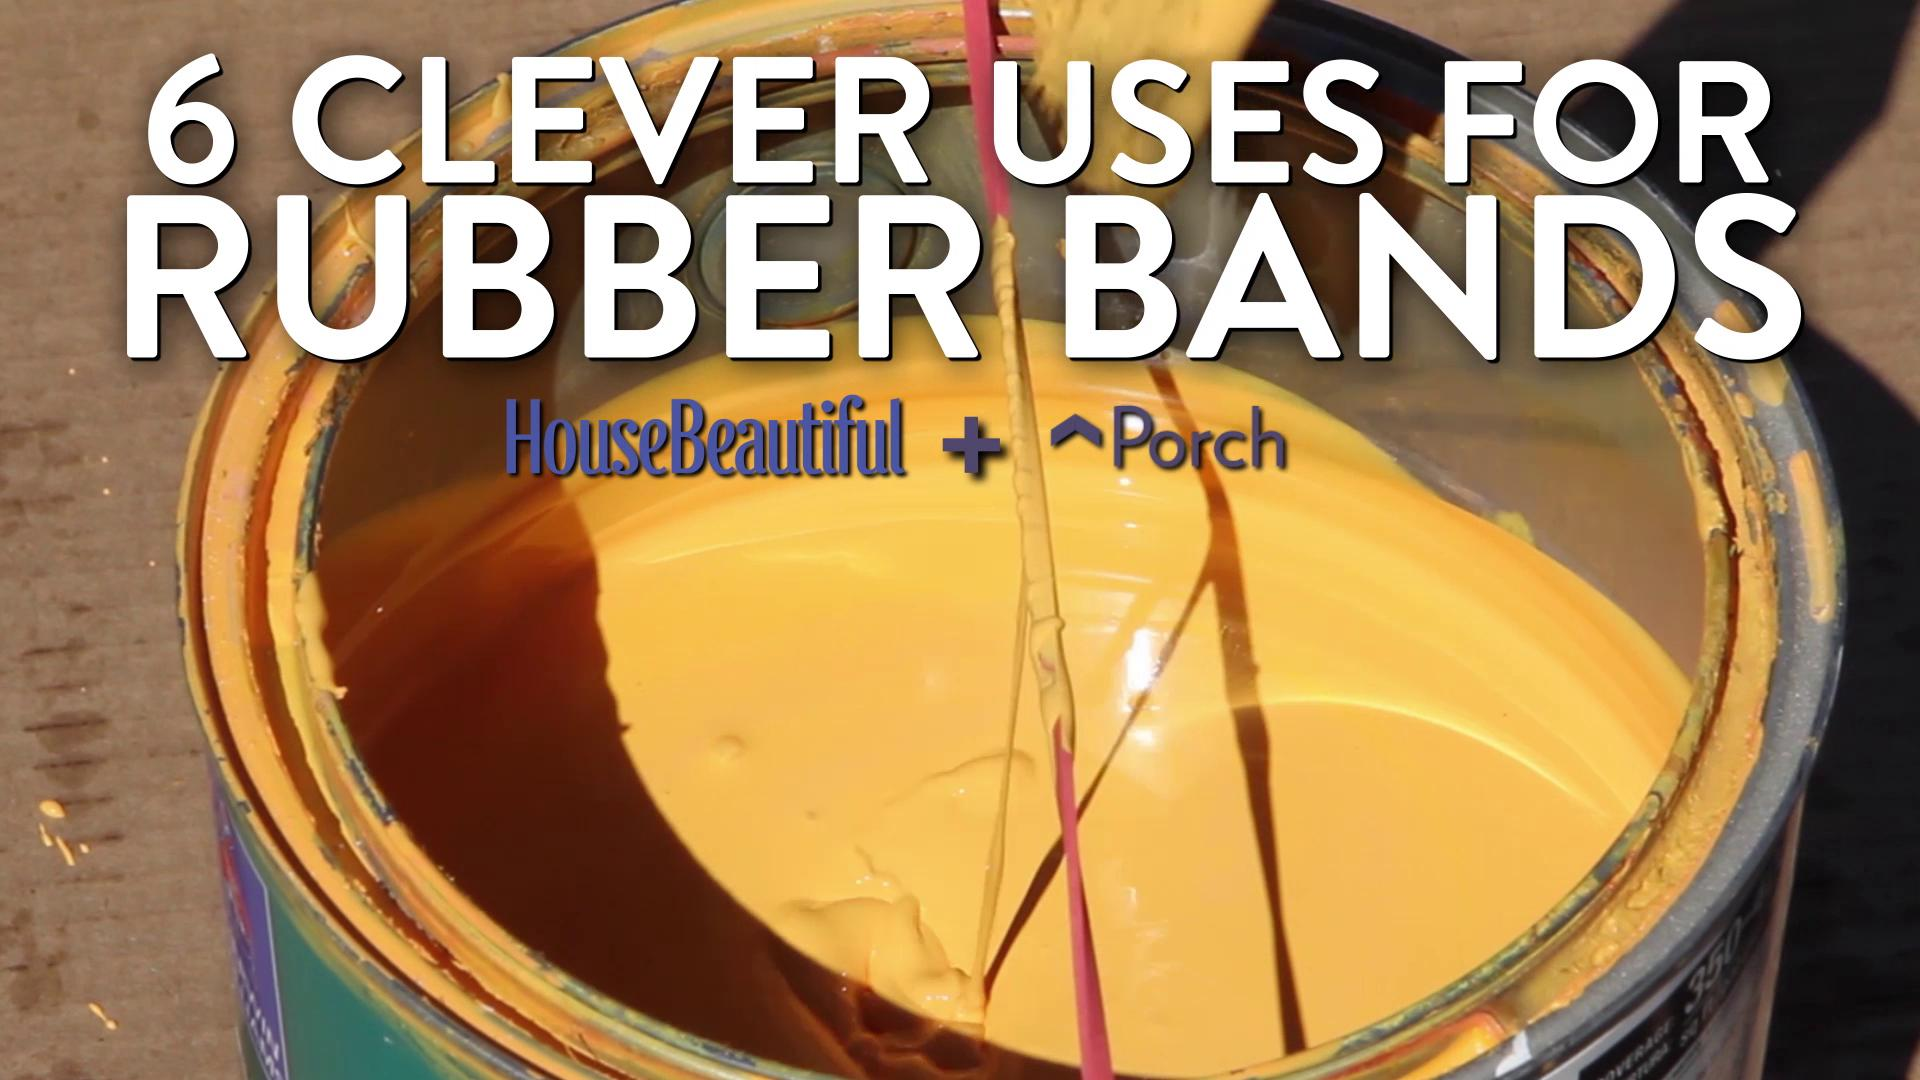 Thanks to @porchdotcom, we now know 6 more ways to use rubber bands https://t.co/YgYamlrVwx